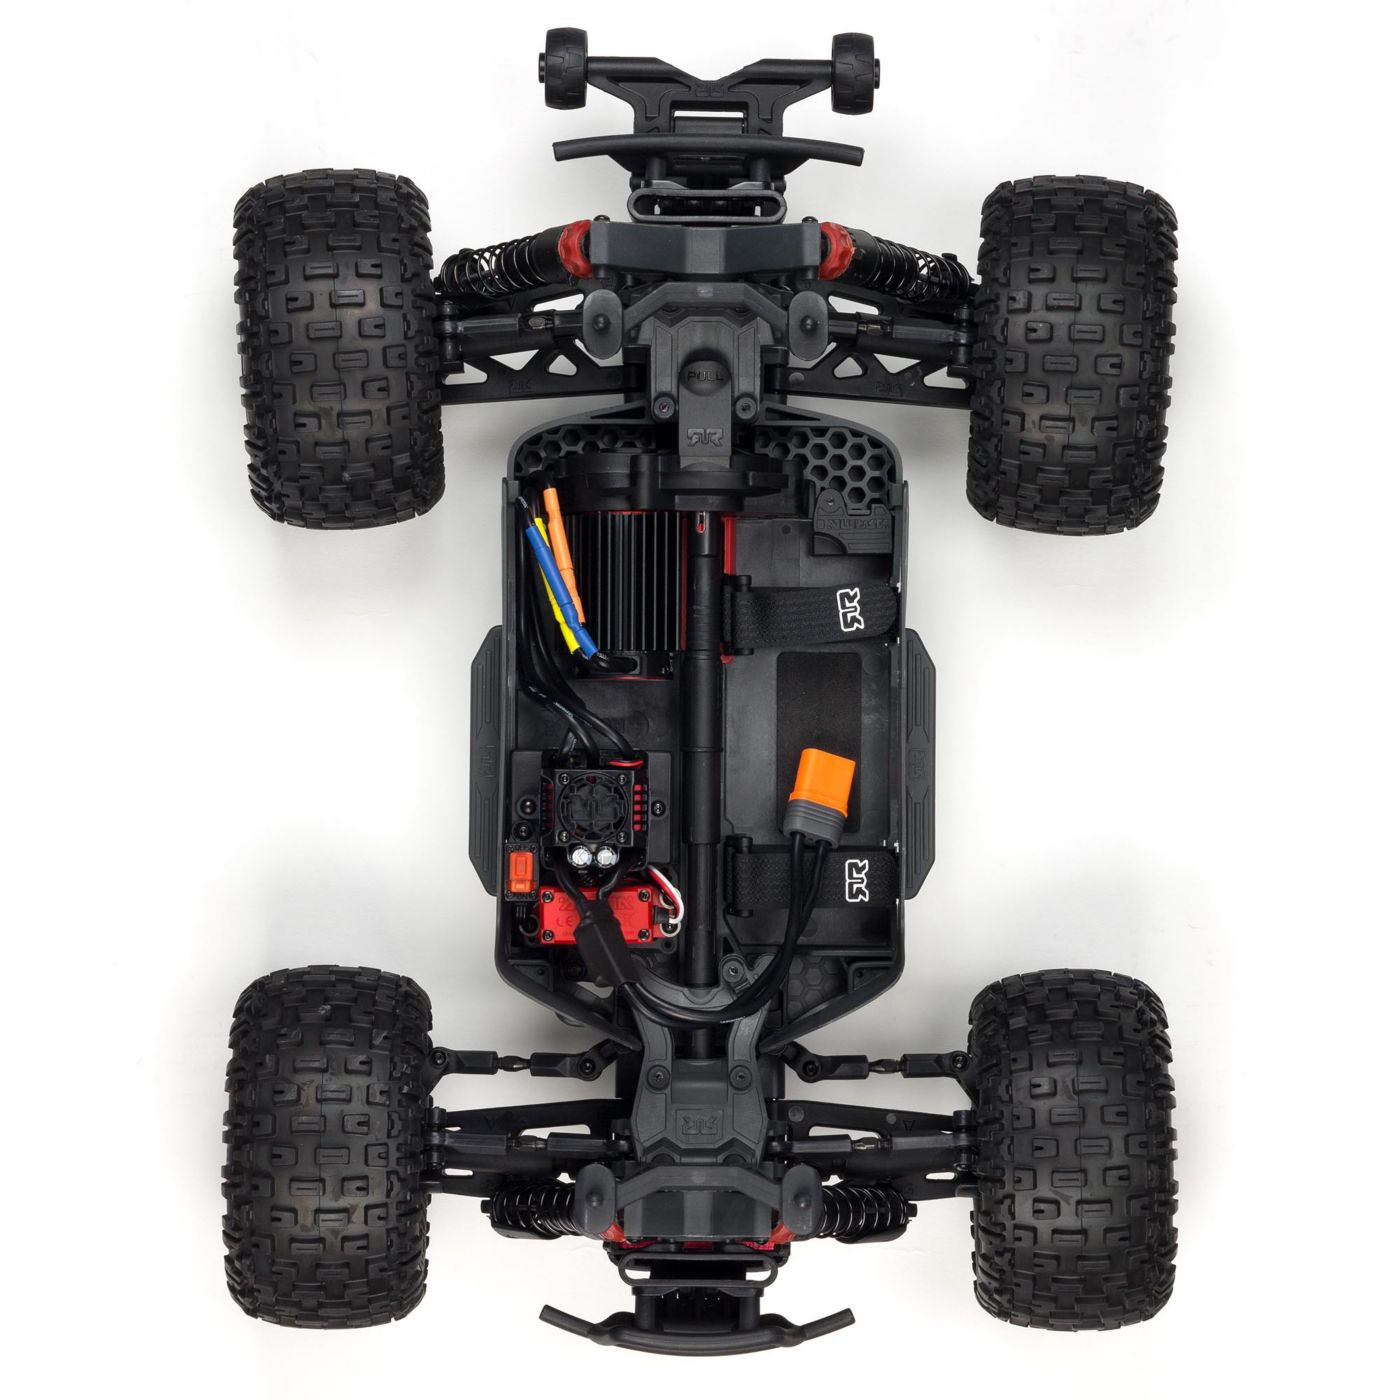 Arrma Granite 3S 4x4 Brushless BLX RTR 3